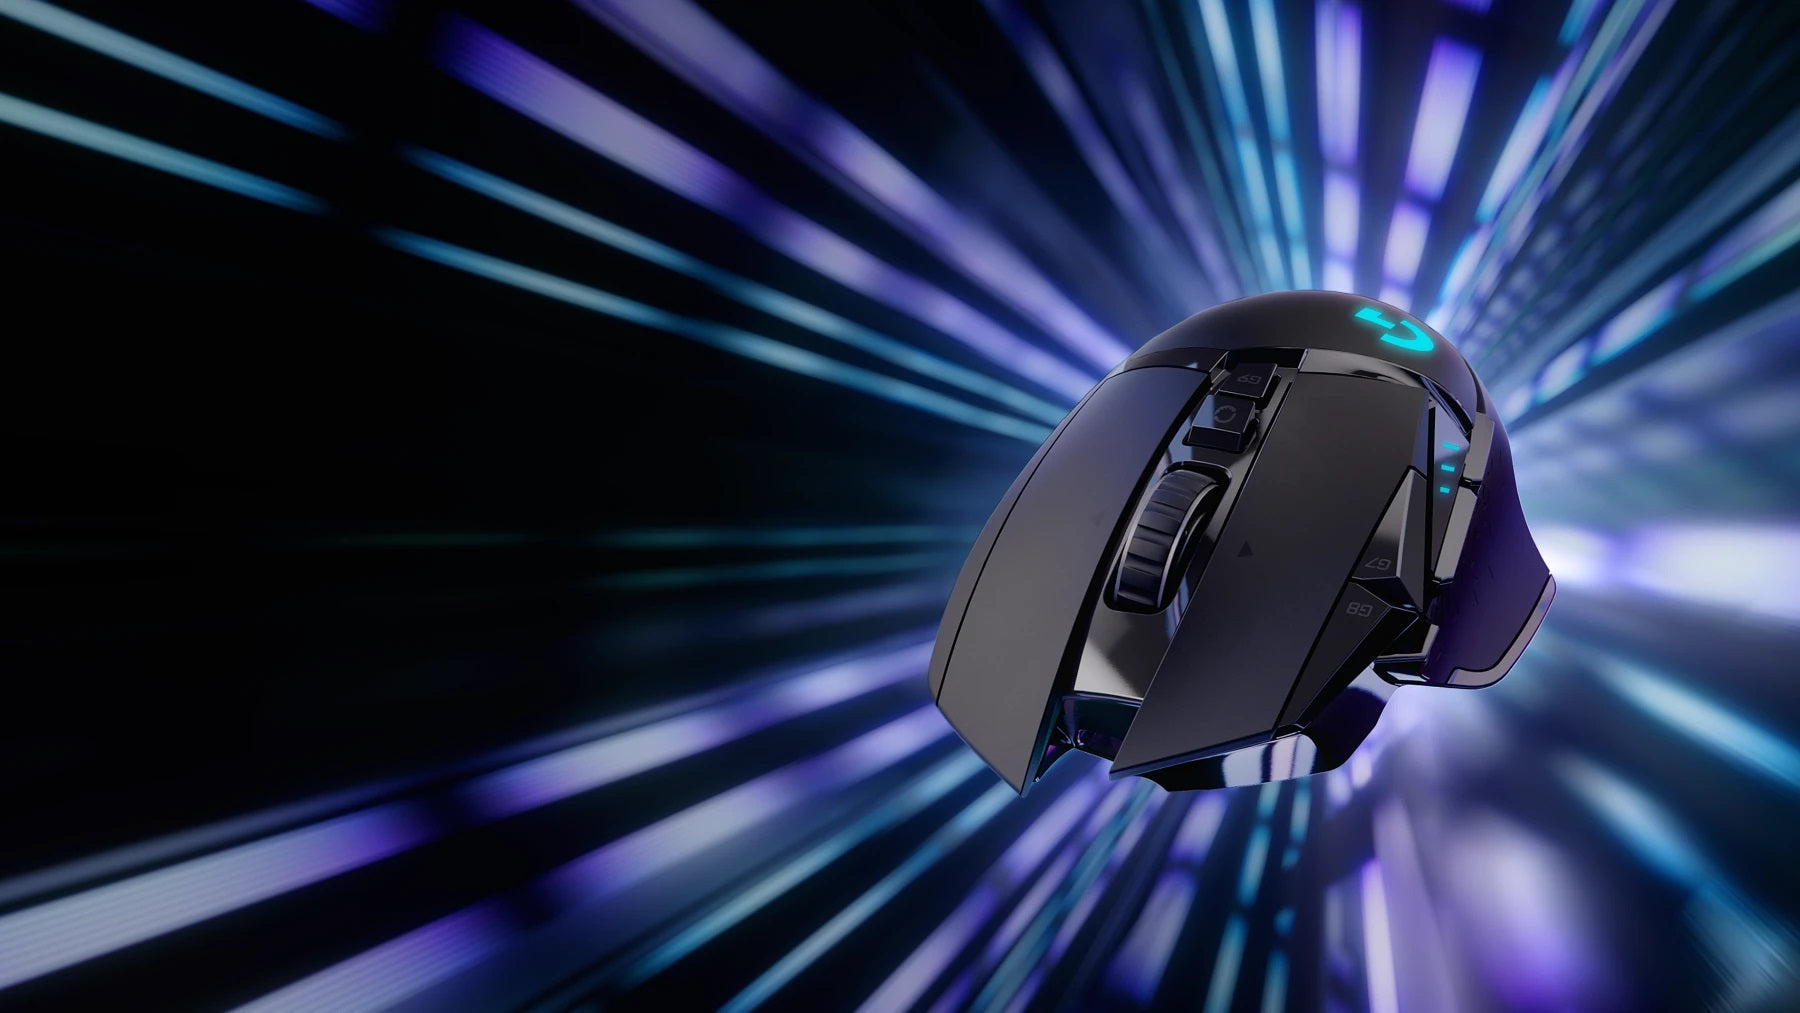 LIGHTSPEED WIRELESS - G502 is an icon, topping the charts through every generation, and the mouse of choice for serious gamers. Now, G502 joins the ranks of the world's most advanced wireless gaming mice with the release of G502 LIGHTSPEED. LIGHTSPEED is ultra-fast and reliable with performance trusted in competition by esports pros. G502 LIGHTSPEED also features the next-generation HERO 16K sensor and is POWERPLAY compatible. With this complete advanced technology remastering, G502 LIGHTSPEED still retains the same beloved shape—and achieves a 7-gram weight reduction.